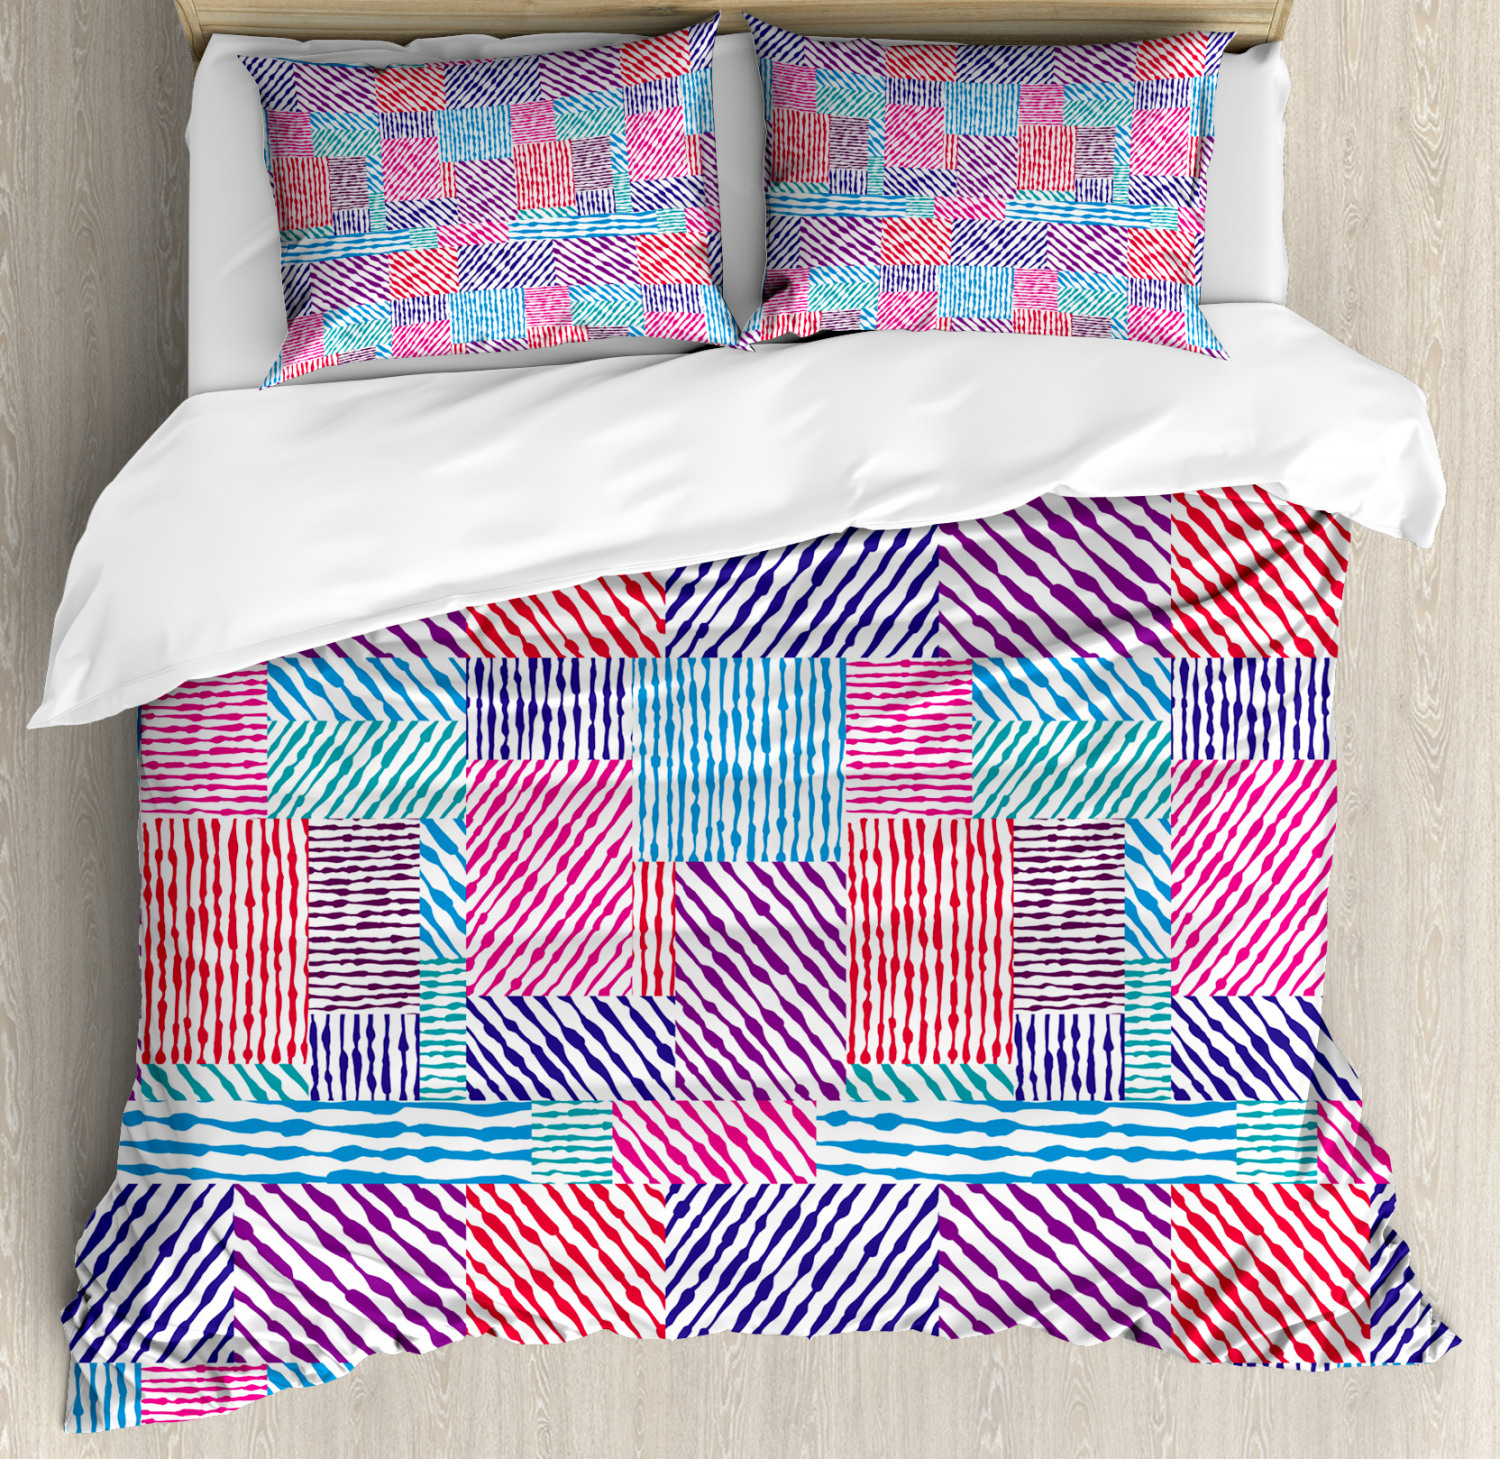 colorful Duvet Cover Set with Pillow Shams Wavy Lines greenical Print